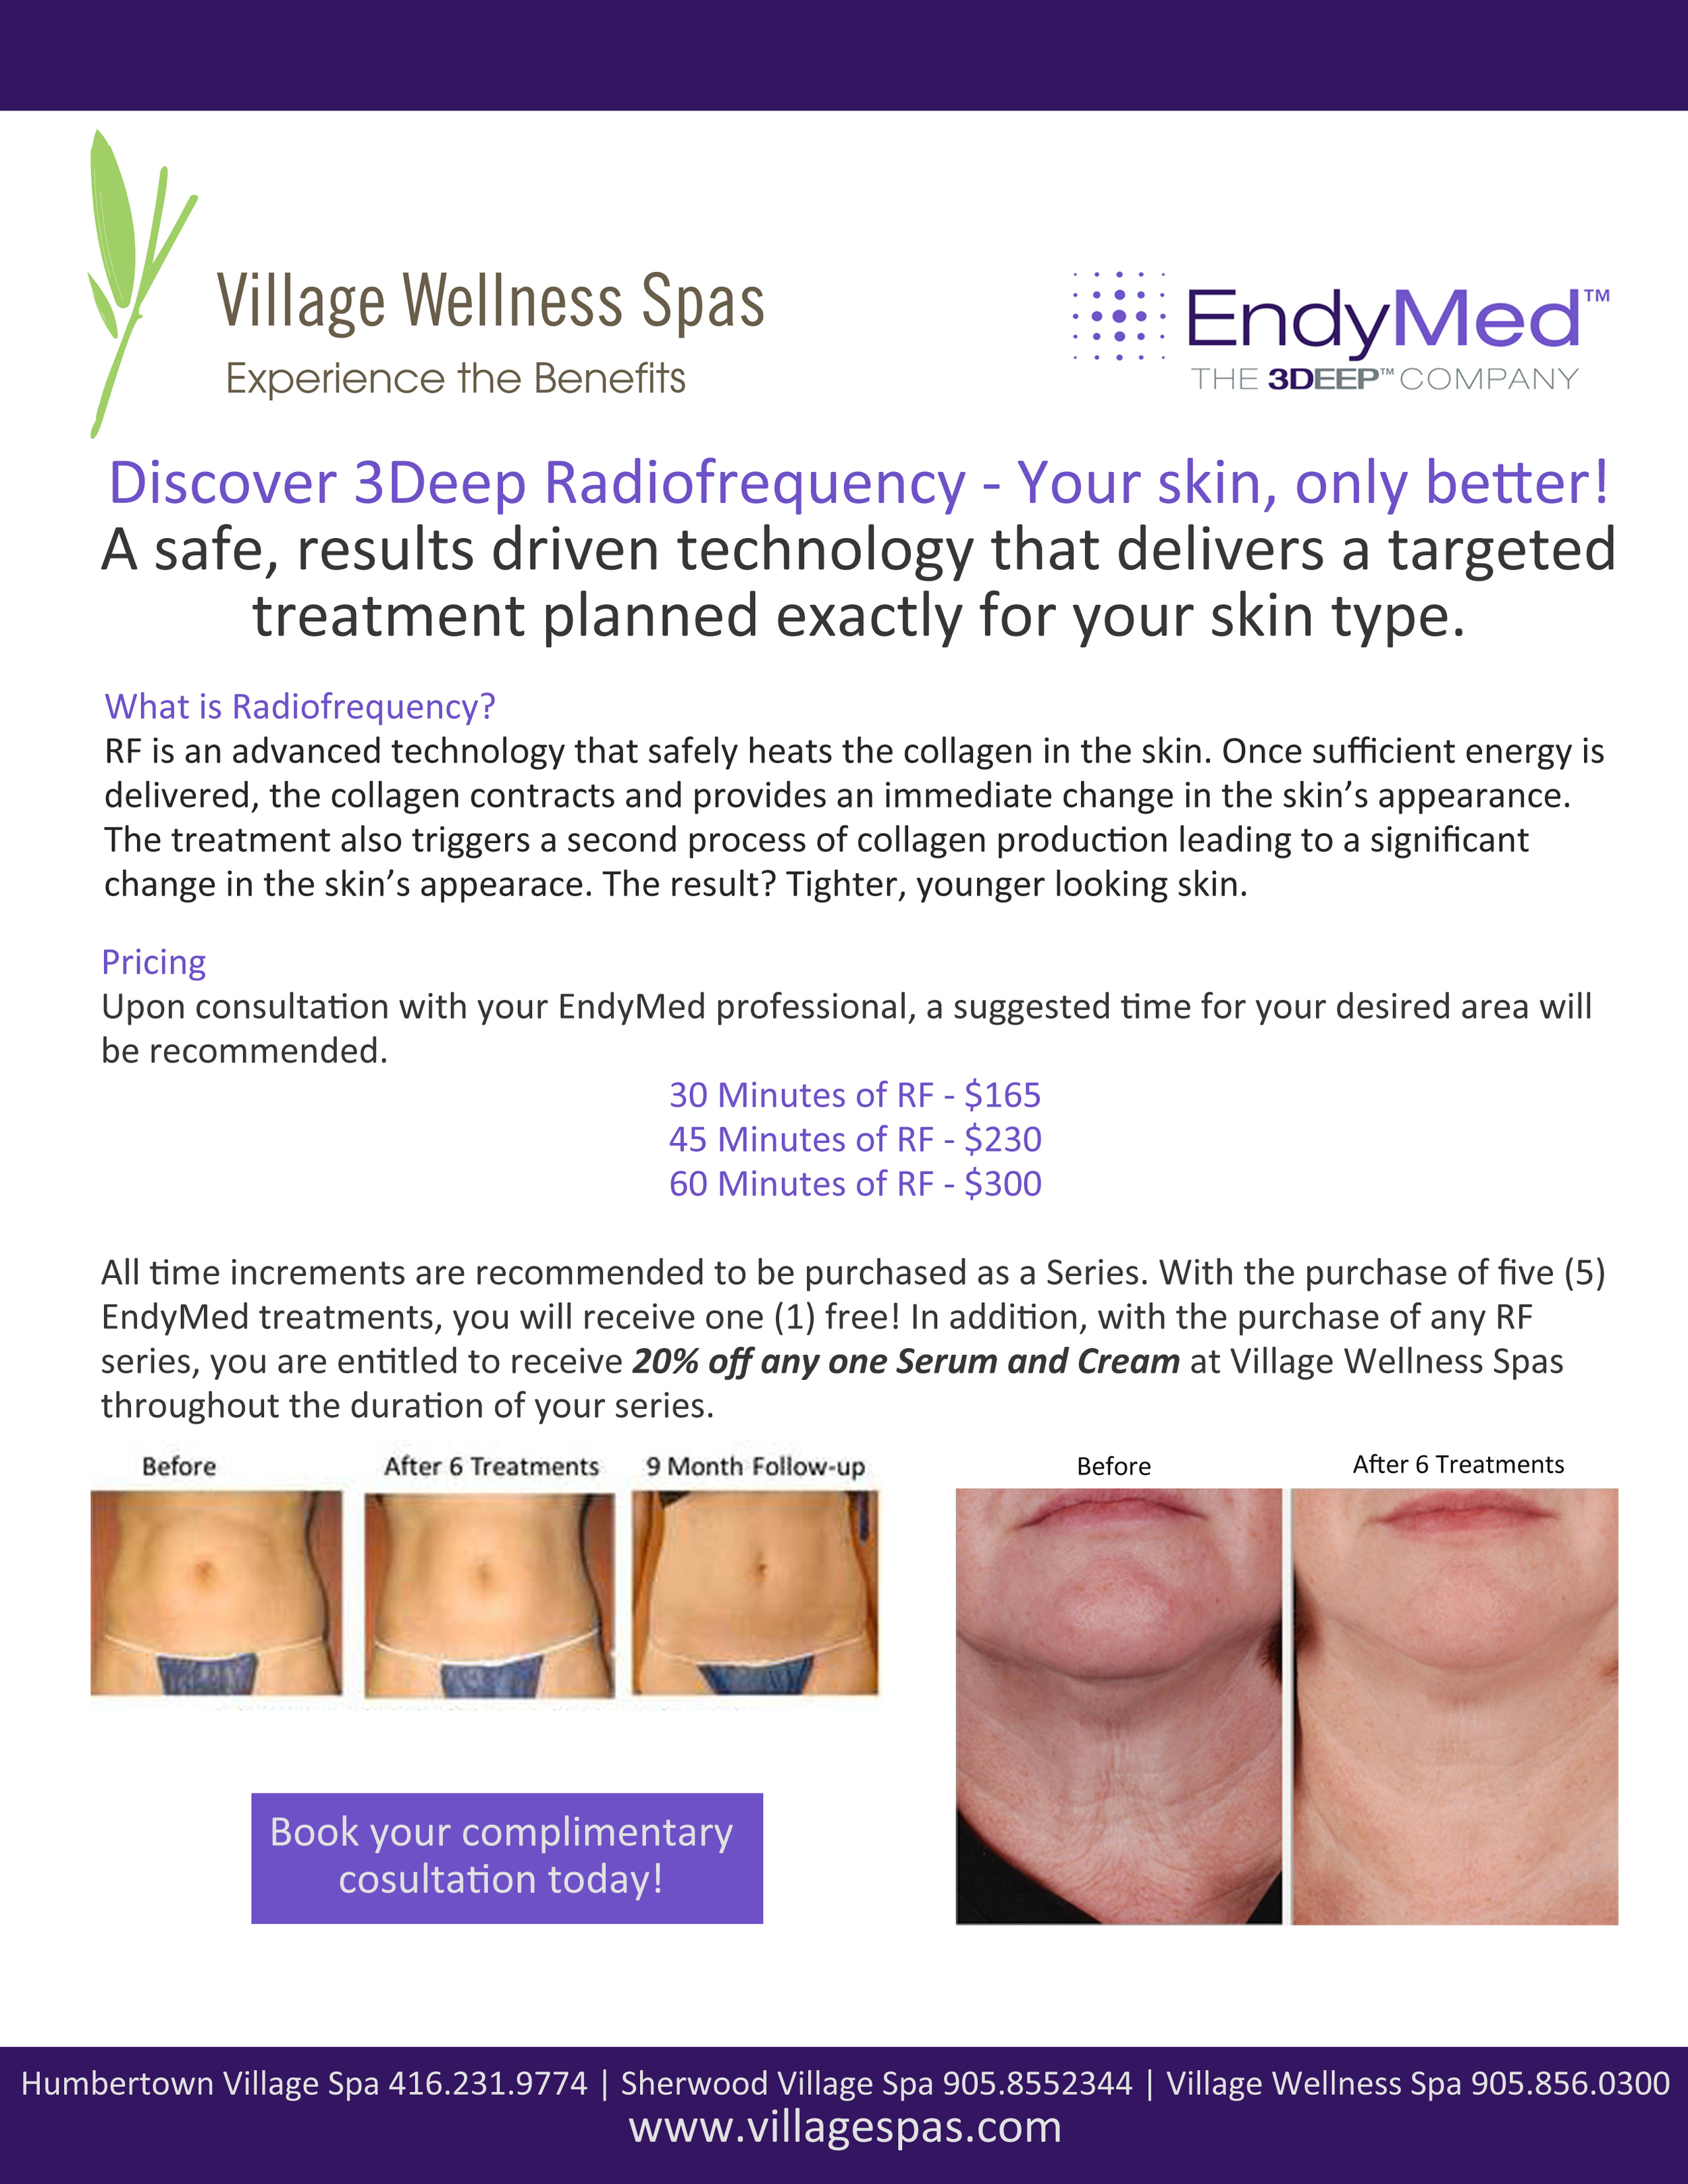 VillageWellnessSpas_Endymed_Info.jpg